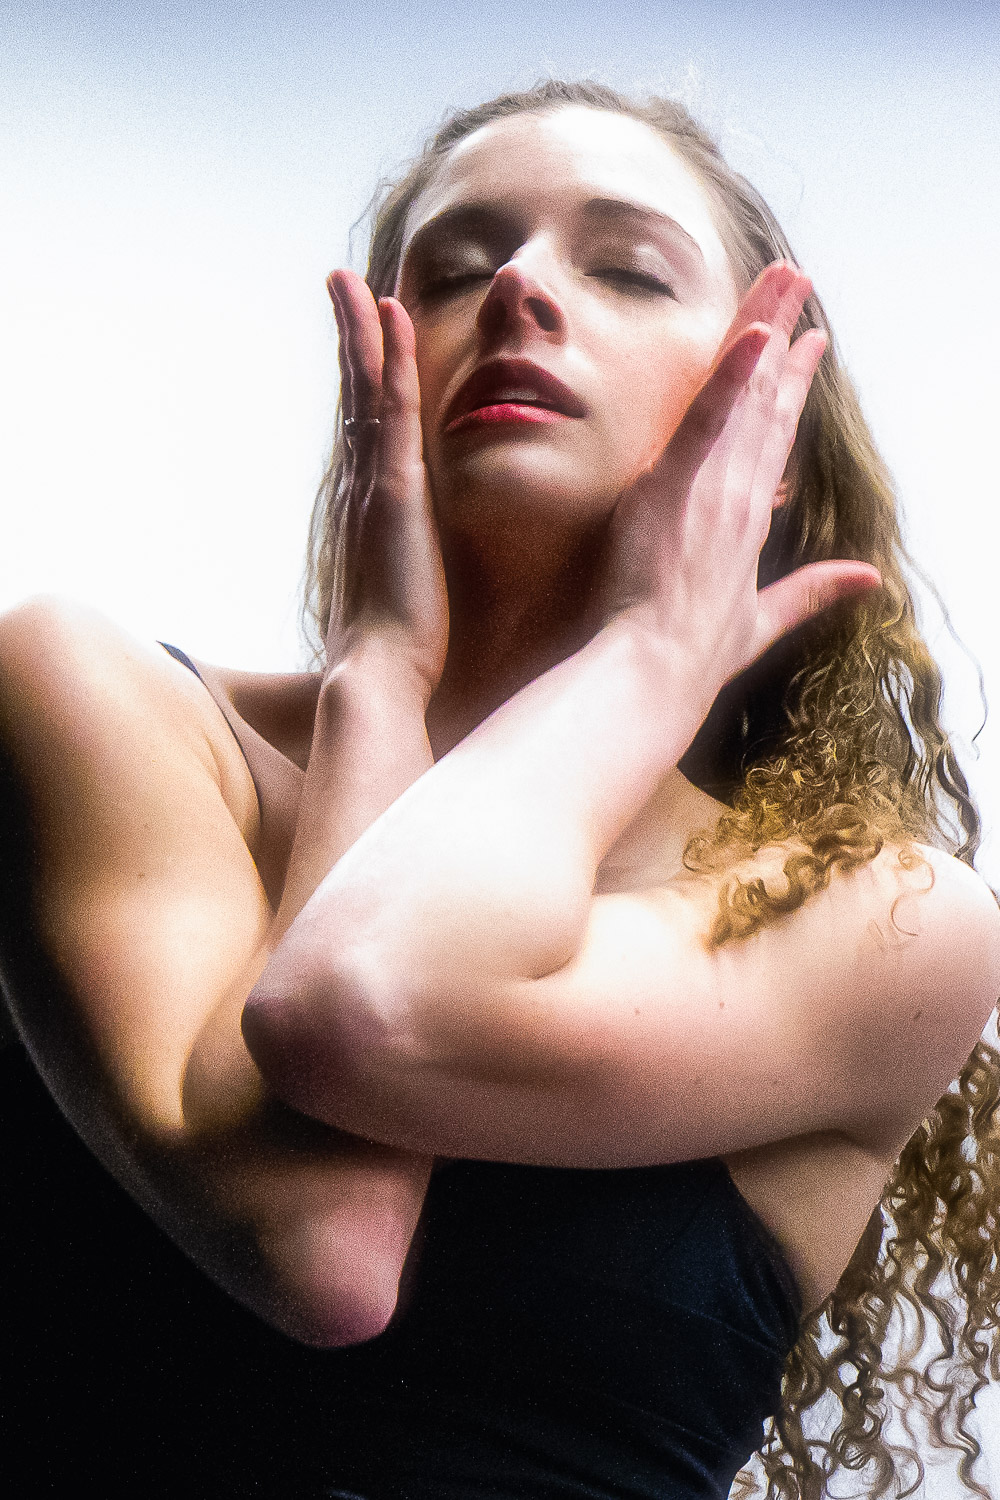 Dancer-Portrait-Eyes-Shut-Hands-On-Face-Emotion.jpg